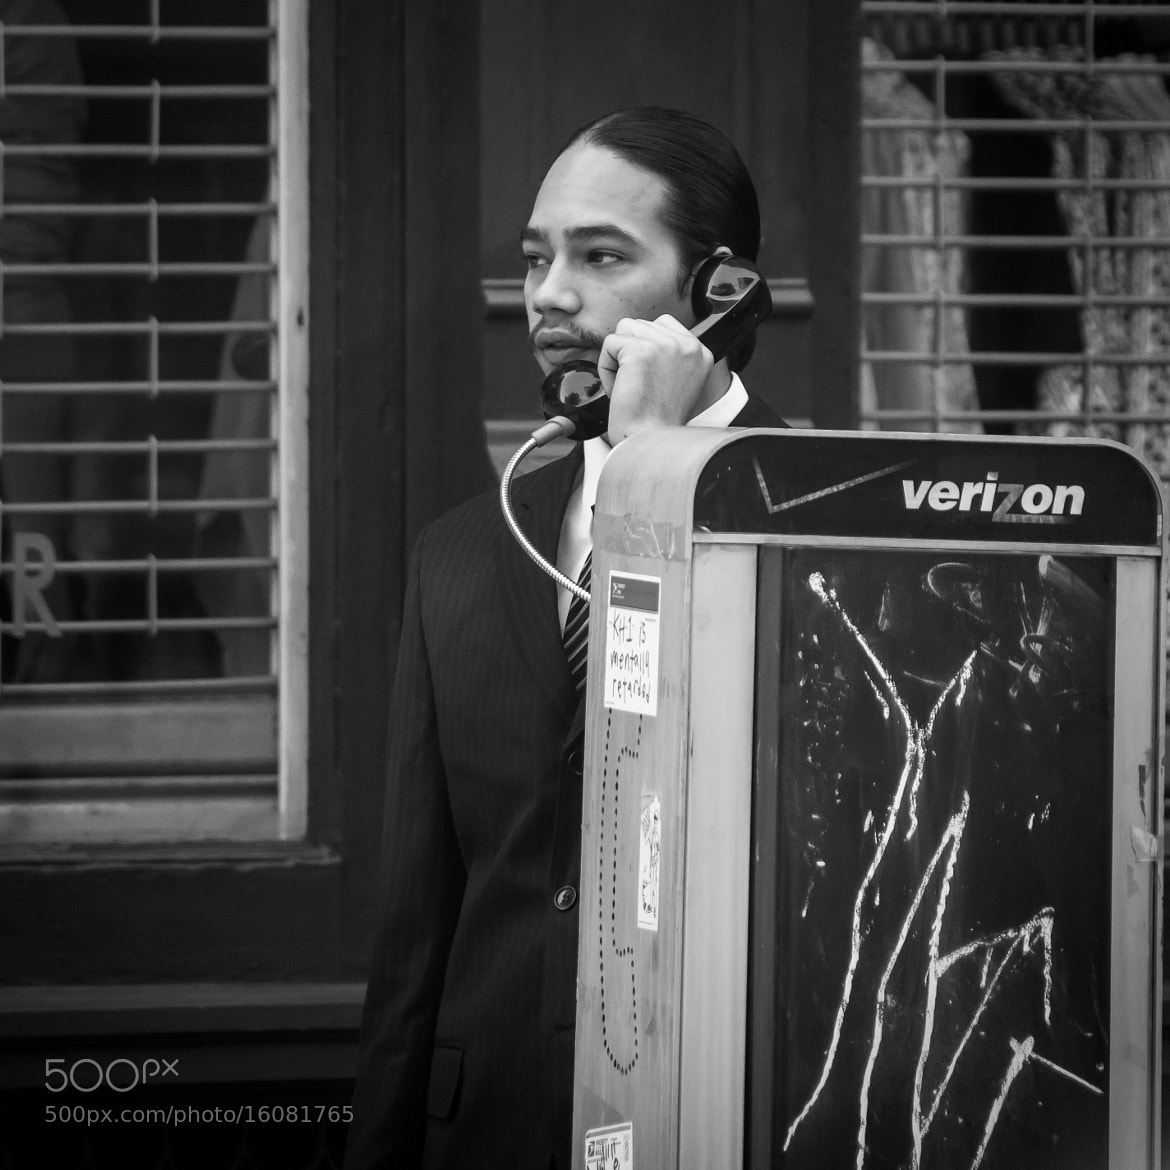 Photograph verizon by Vit Vitali vinduPhoto on 500px